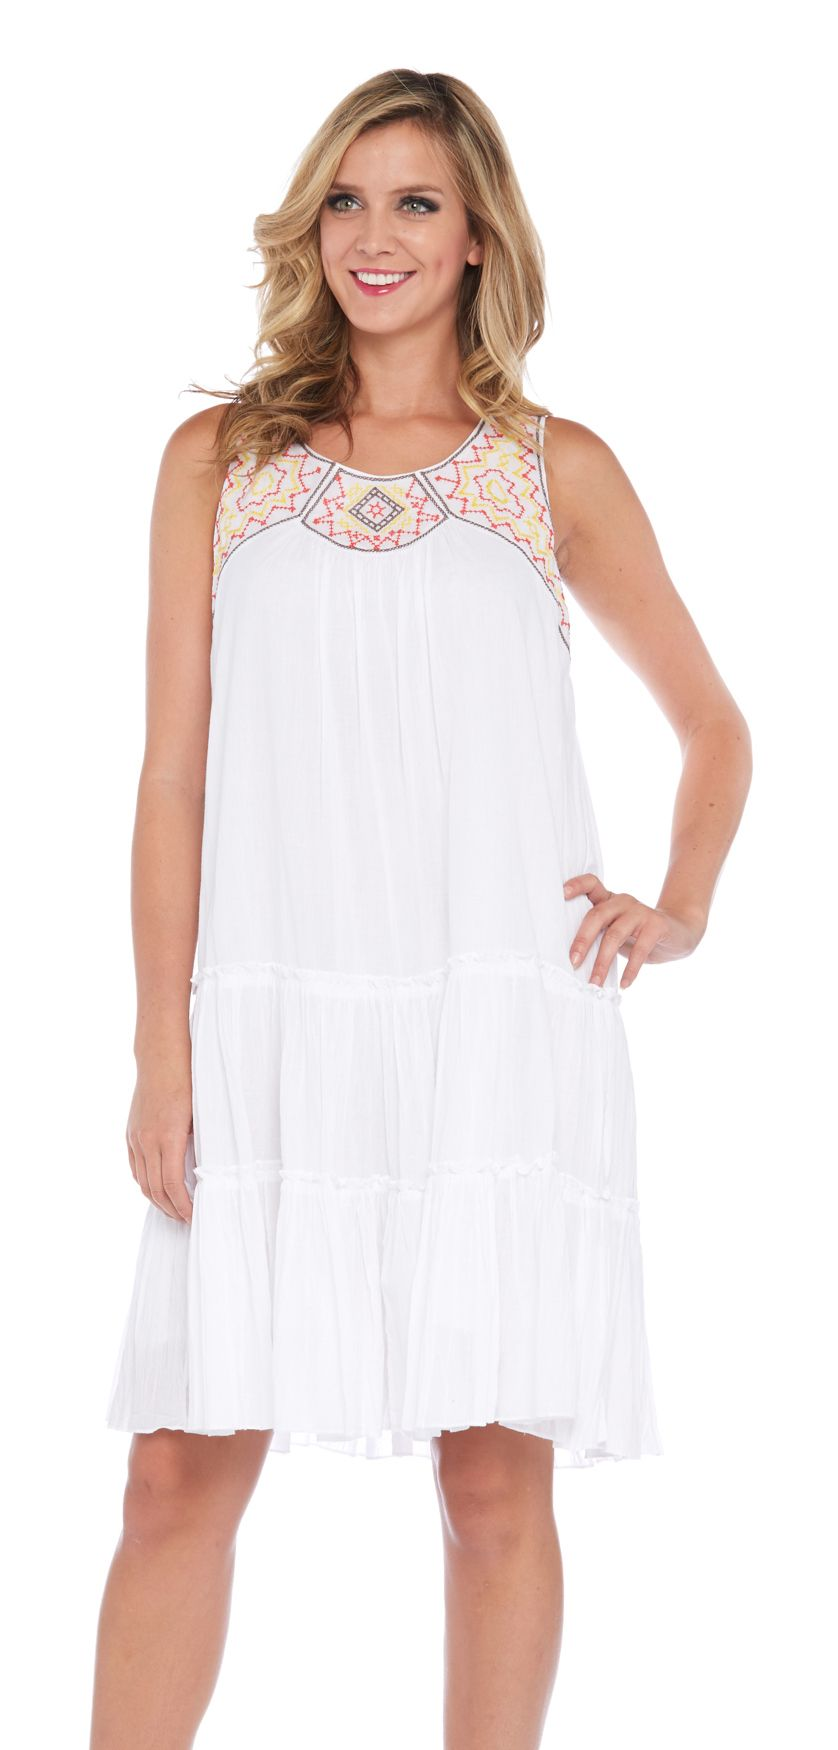 Kaktus Embroidered Neck Trapeze Dress In White Night Gown Nightgowns For Women Contemporary Outfits [ 1750 x 838 Pixel ]